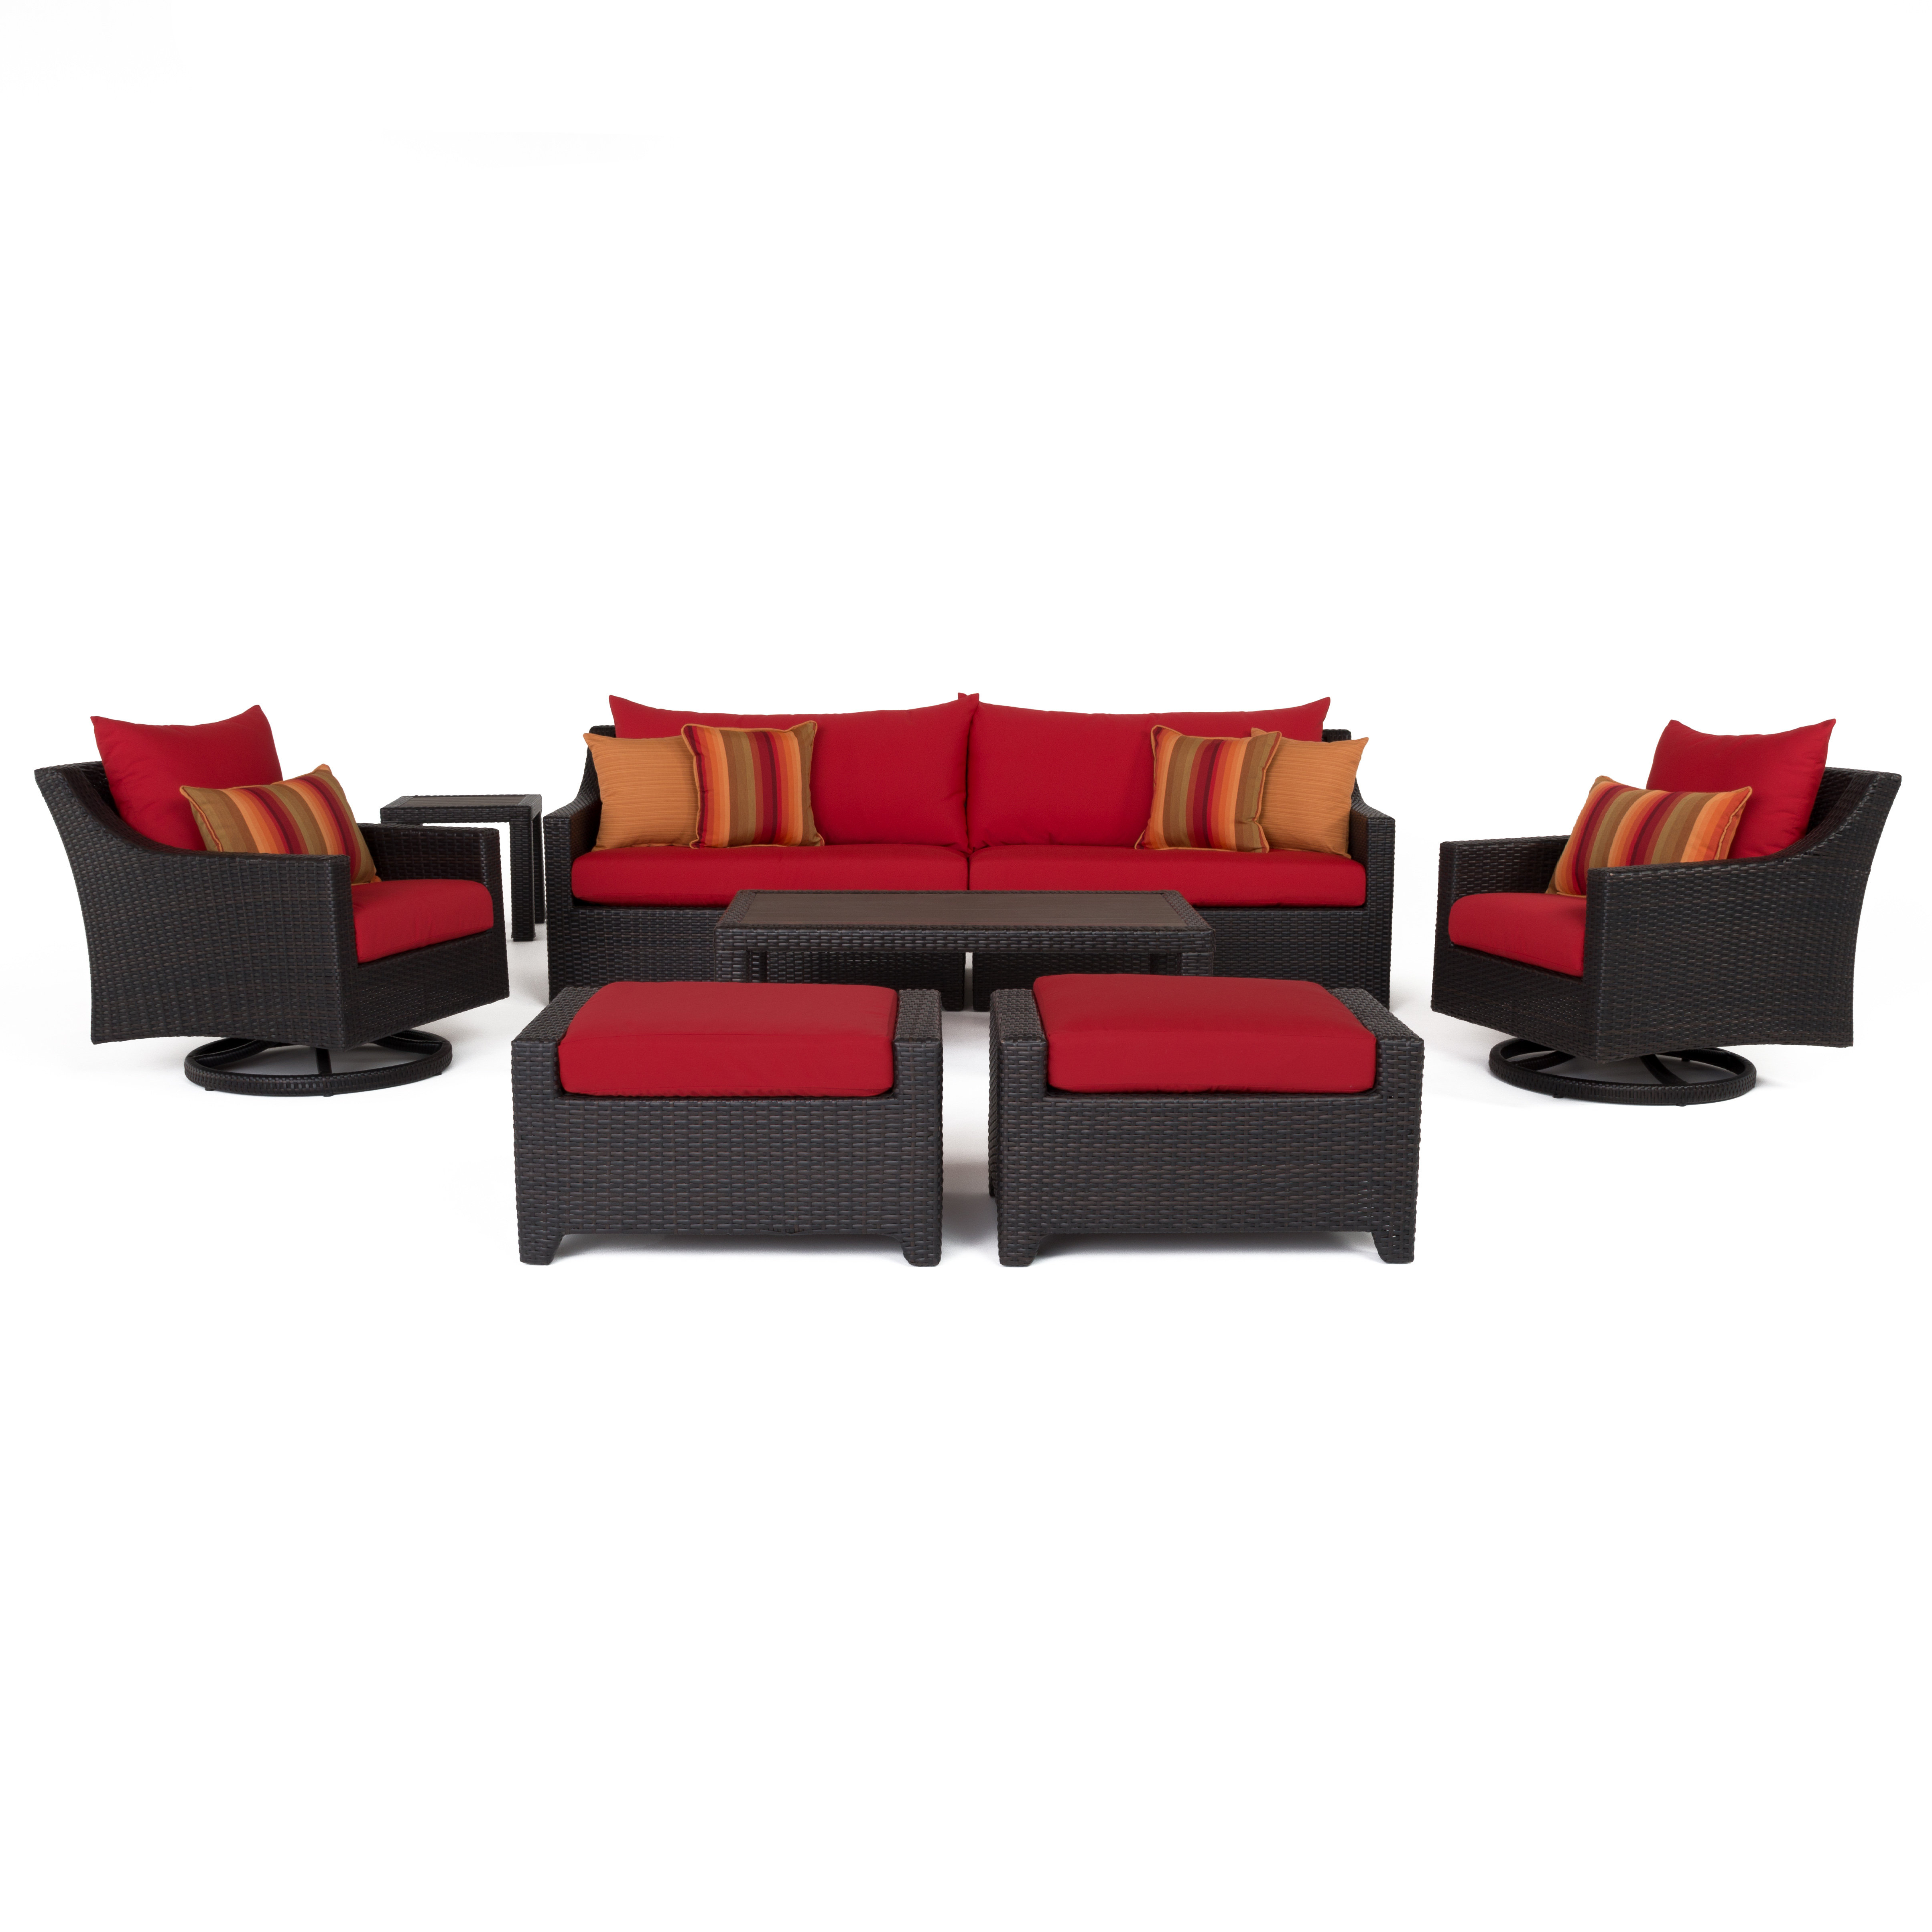 Northridge 8 Piece Sofa Set With Cushions In Recent Northridge Patio Sofas With Sunbrella Cushions (View 12 of 20)